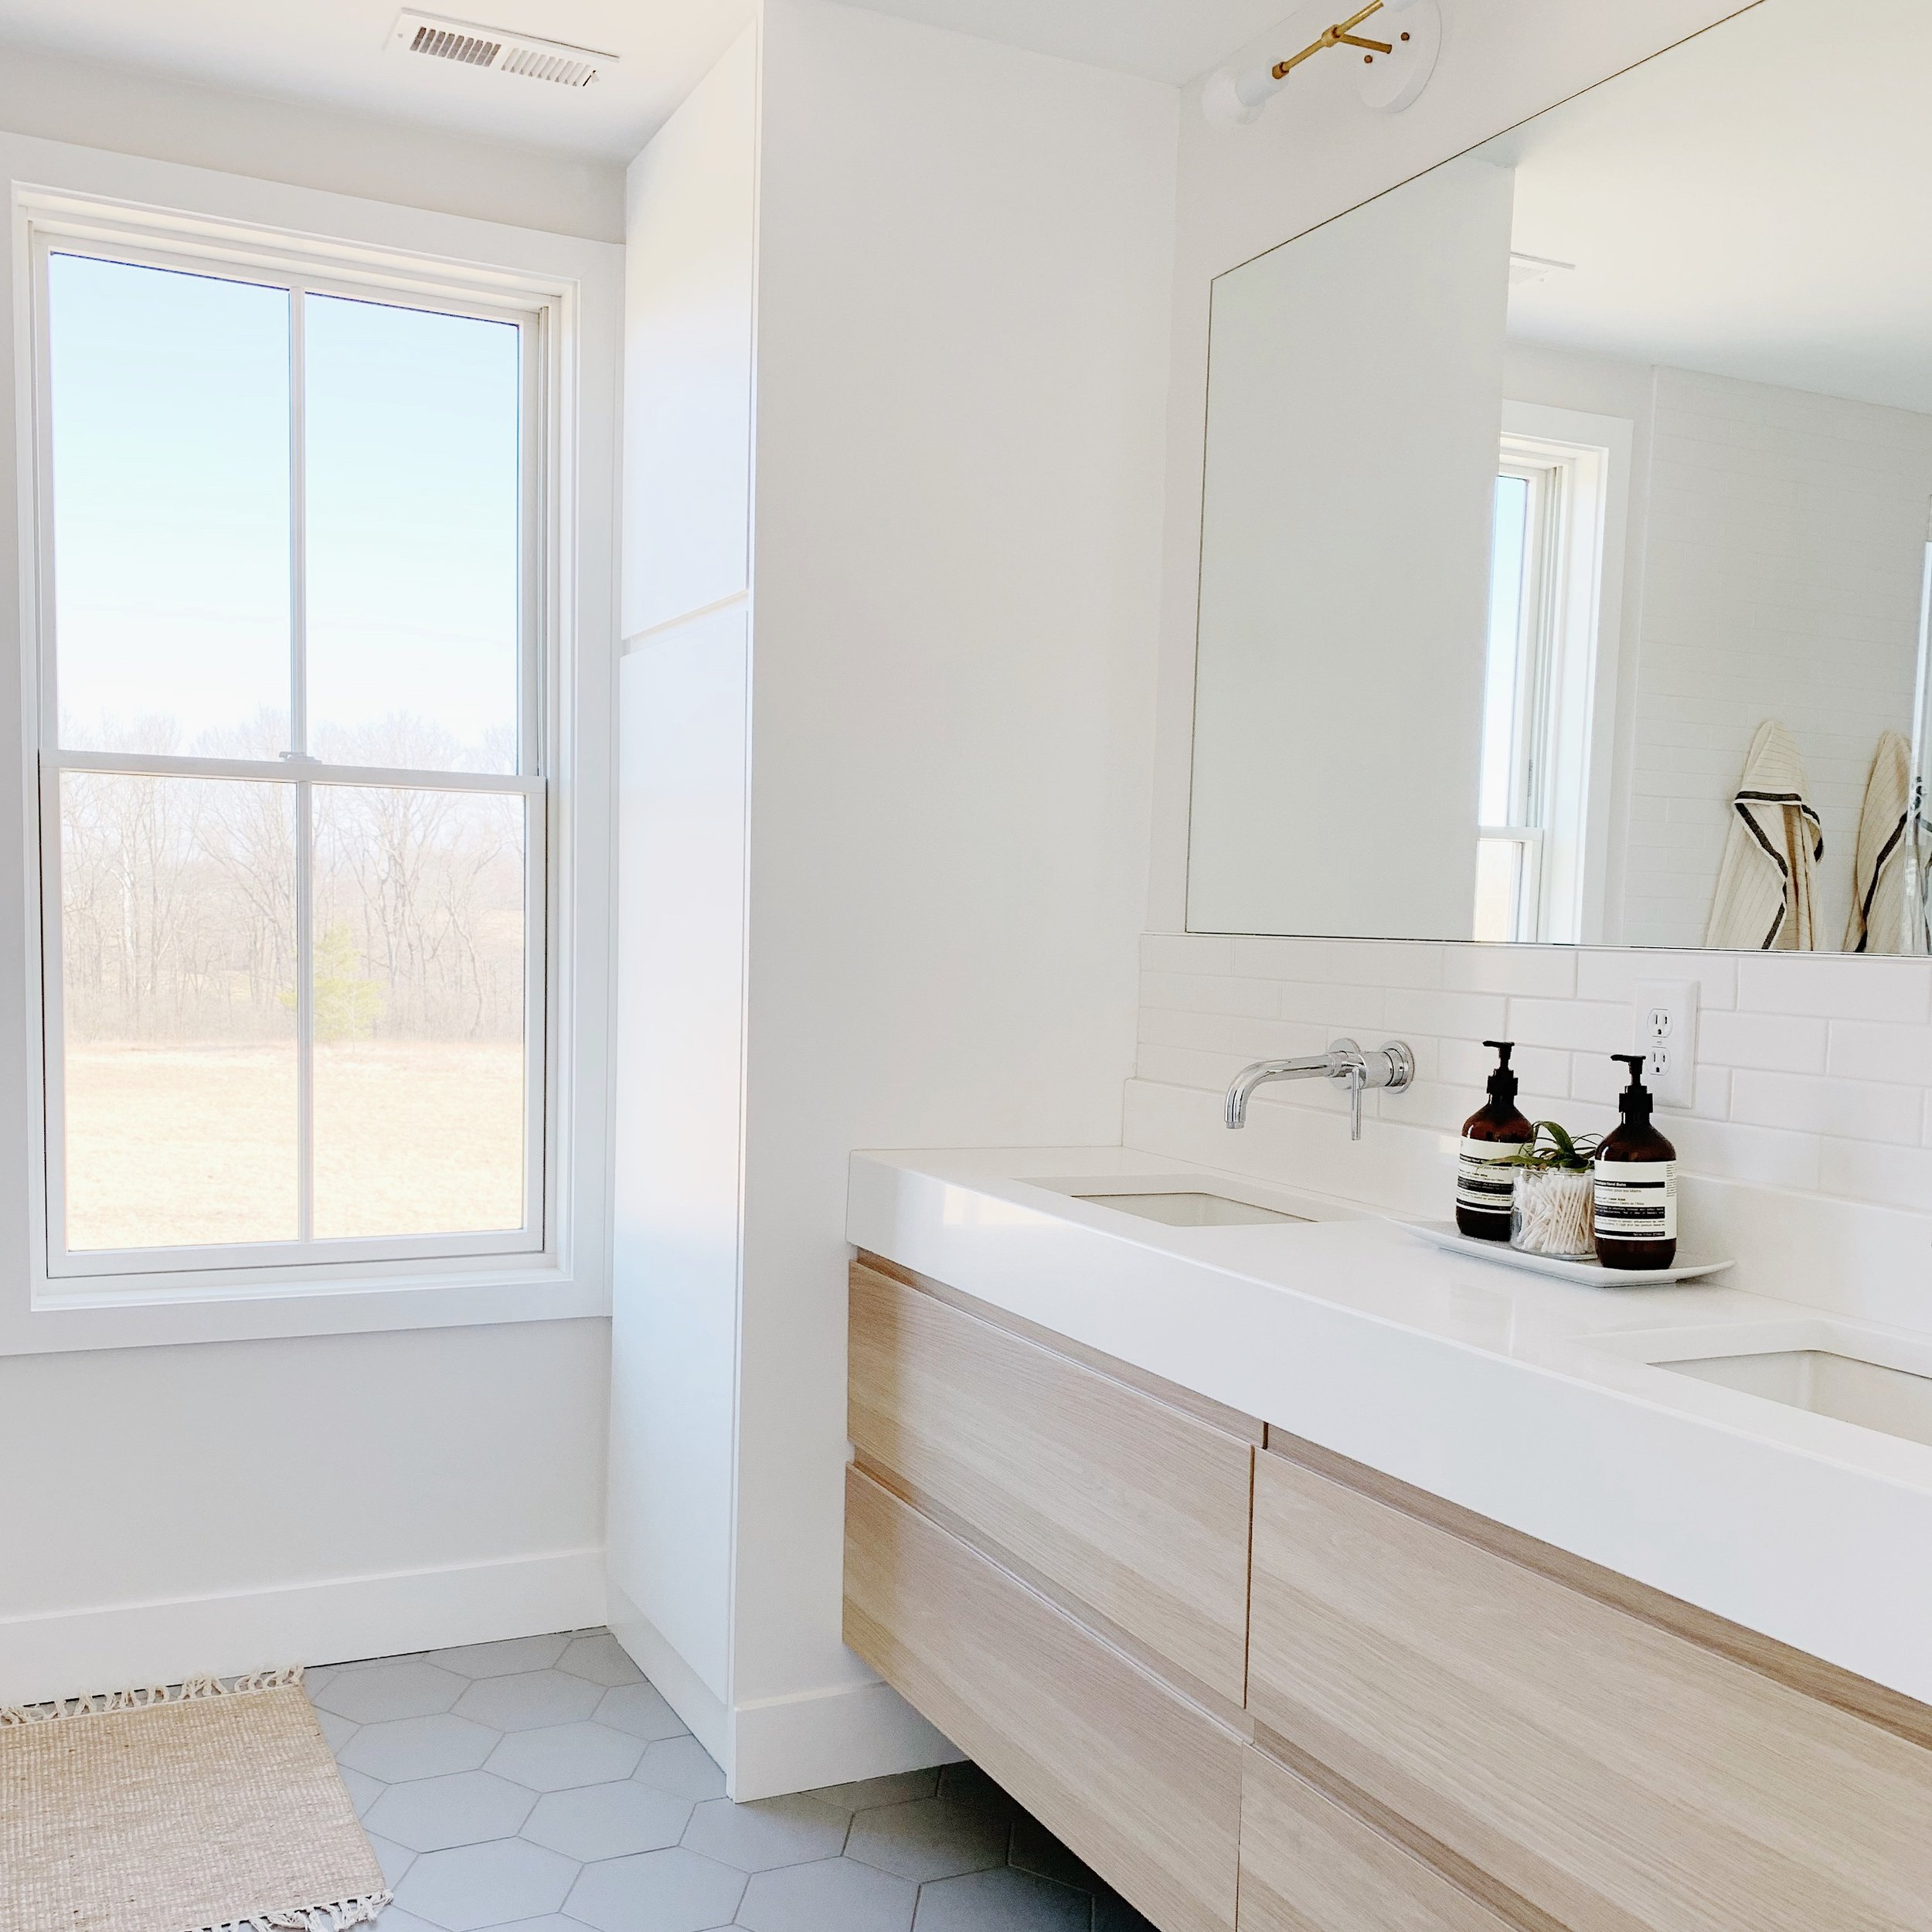 m a s t e r b a t h - An oversized window was the jumping off point for this light and bright space. Featuring IKEA vanities with a custom quartz countertop and under mount sinks, this room proves that a little imagination and hard work makes anything possible.